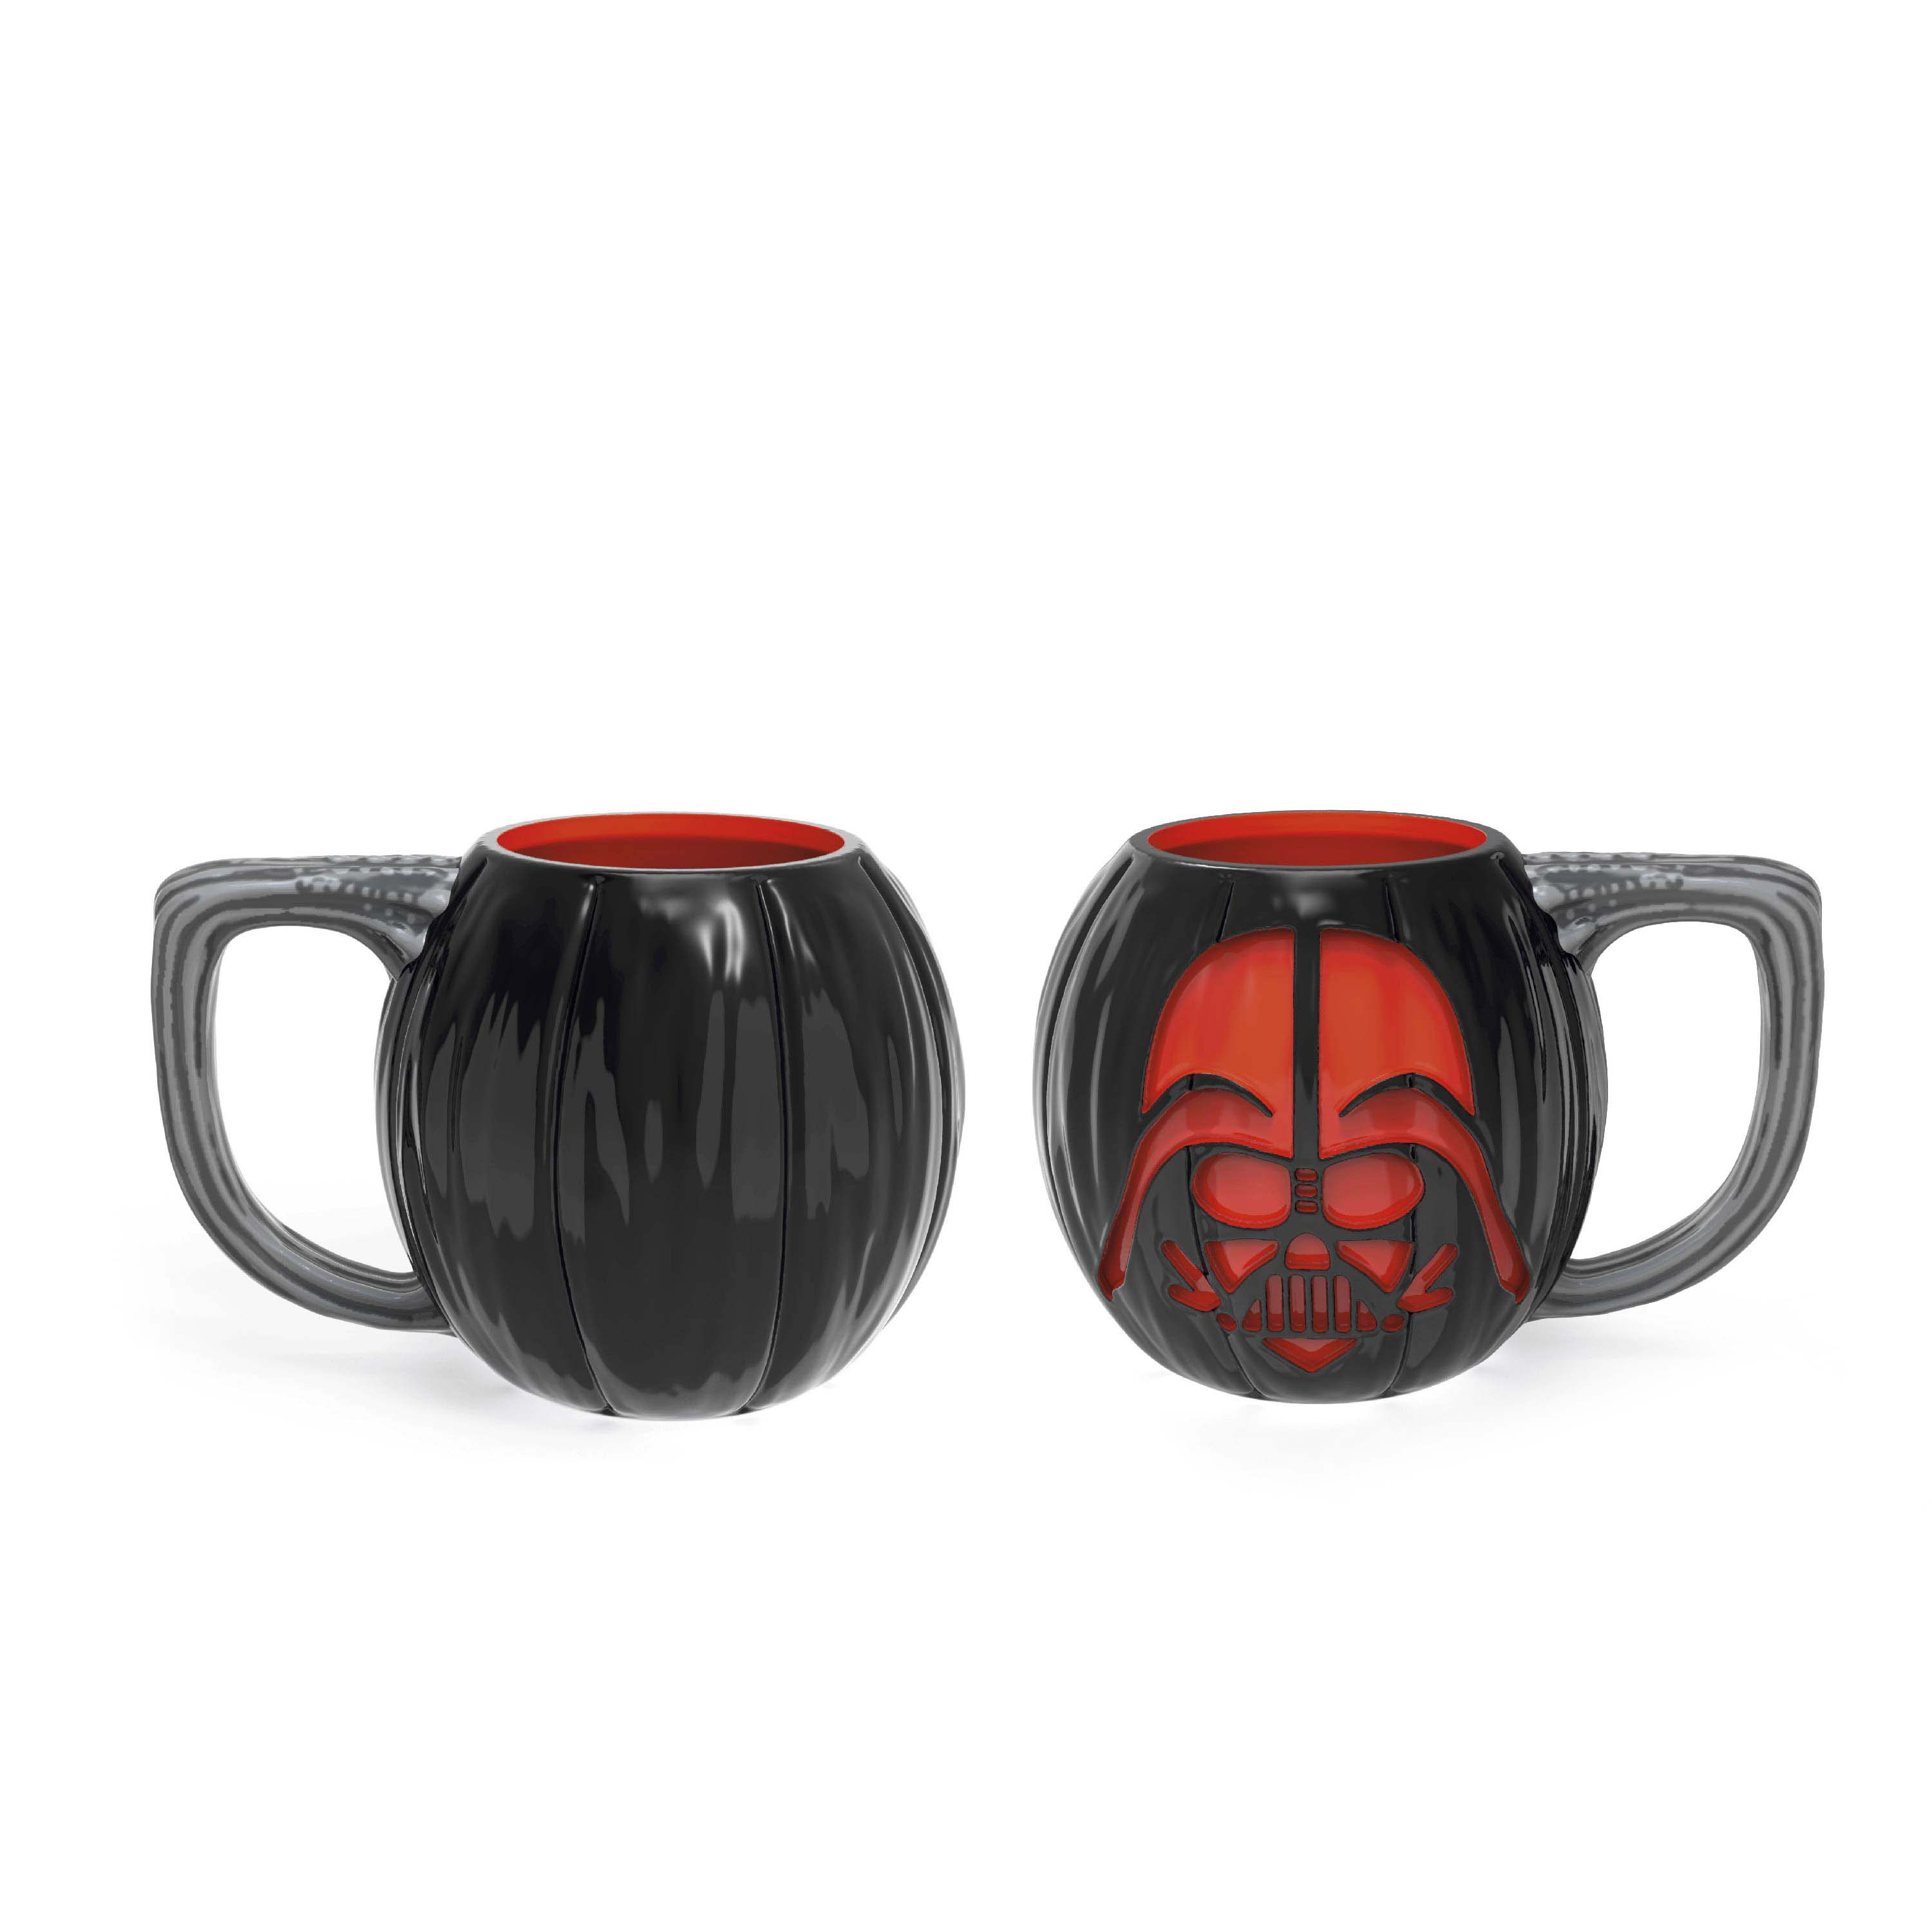 Star Wars 15 ounce Coffee Mug and Spoon, Darth Vader